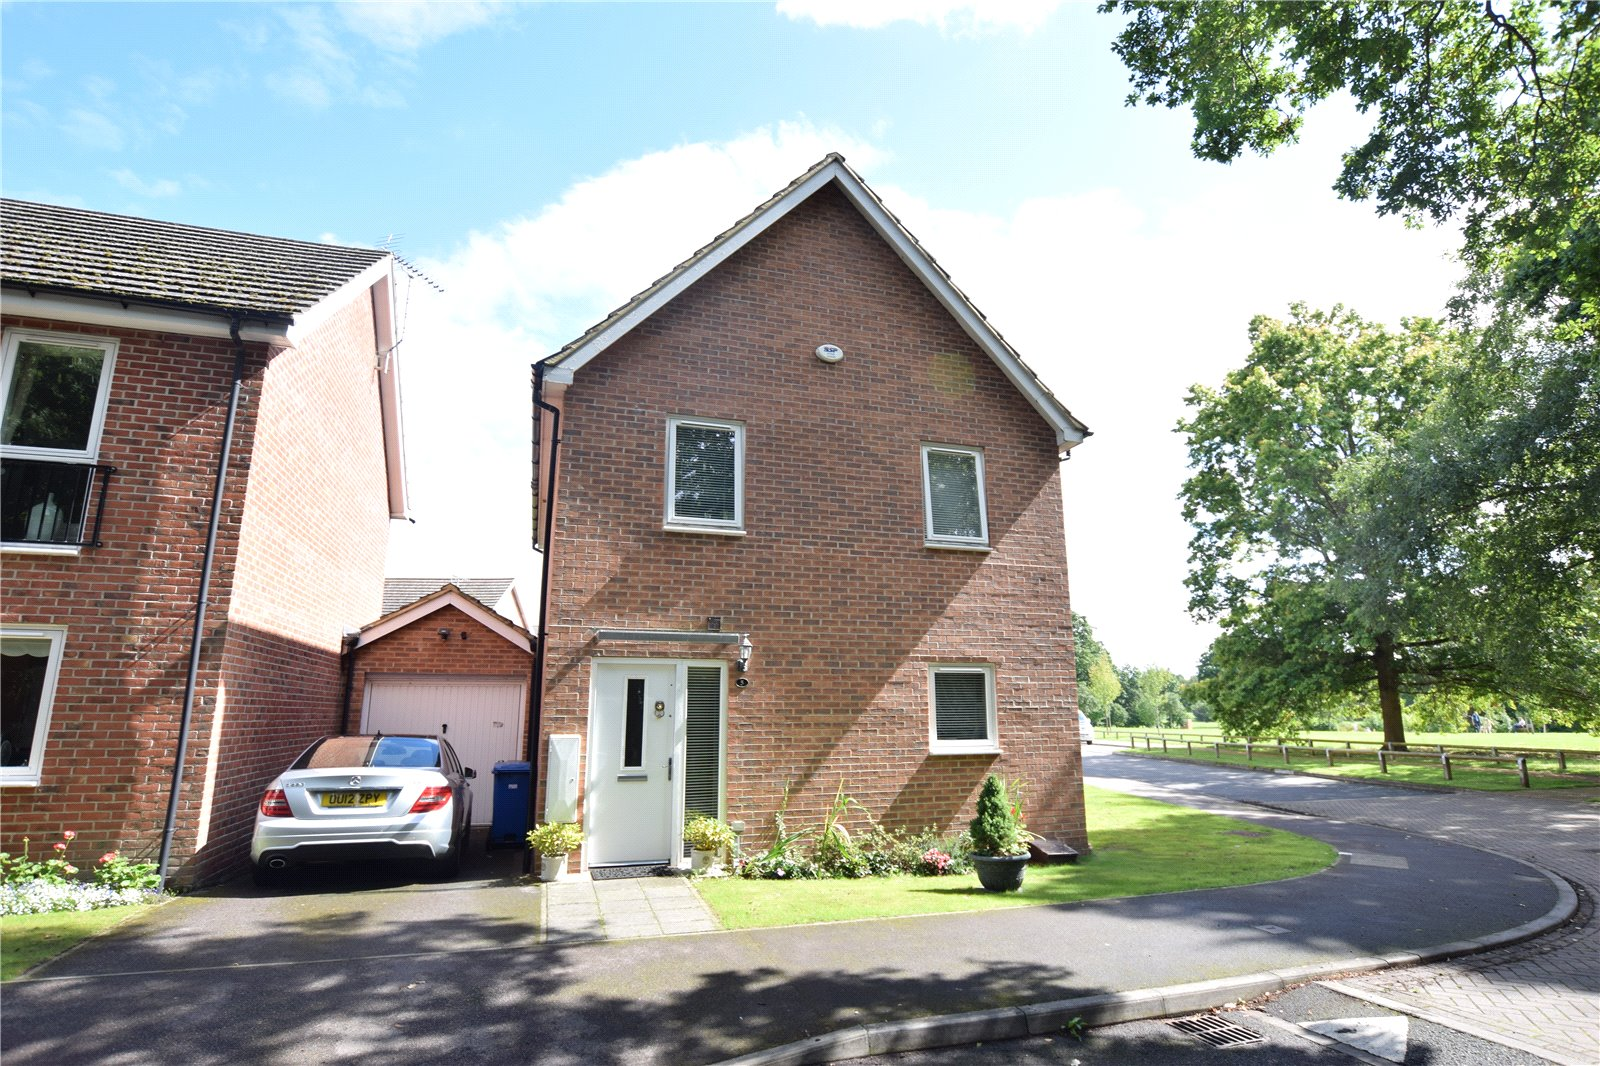 3 Bedrooms Detached House for sale in Hastings View, Bracknell, Berkshire, RG12